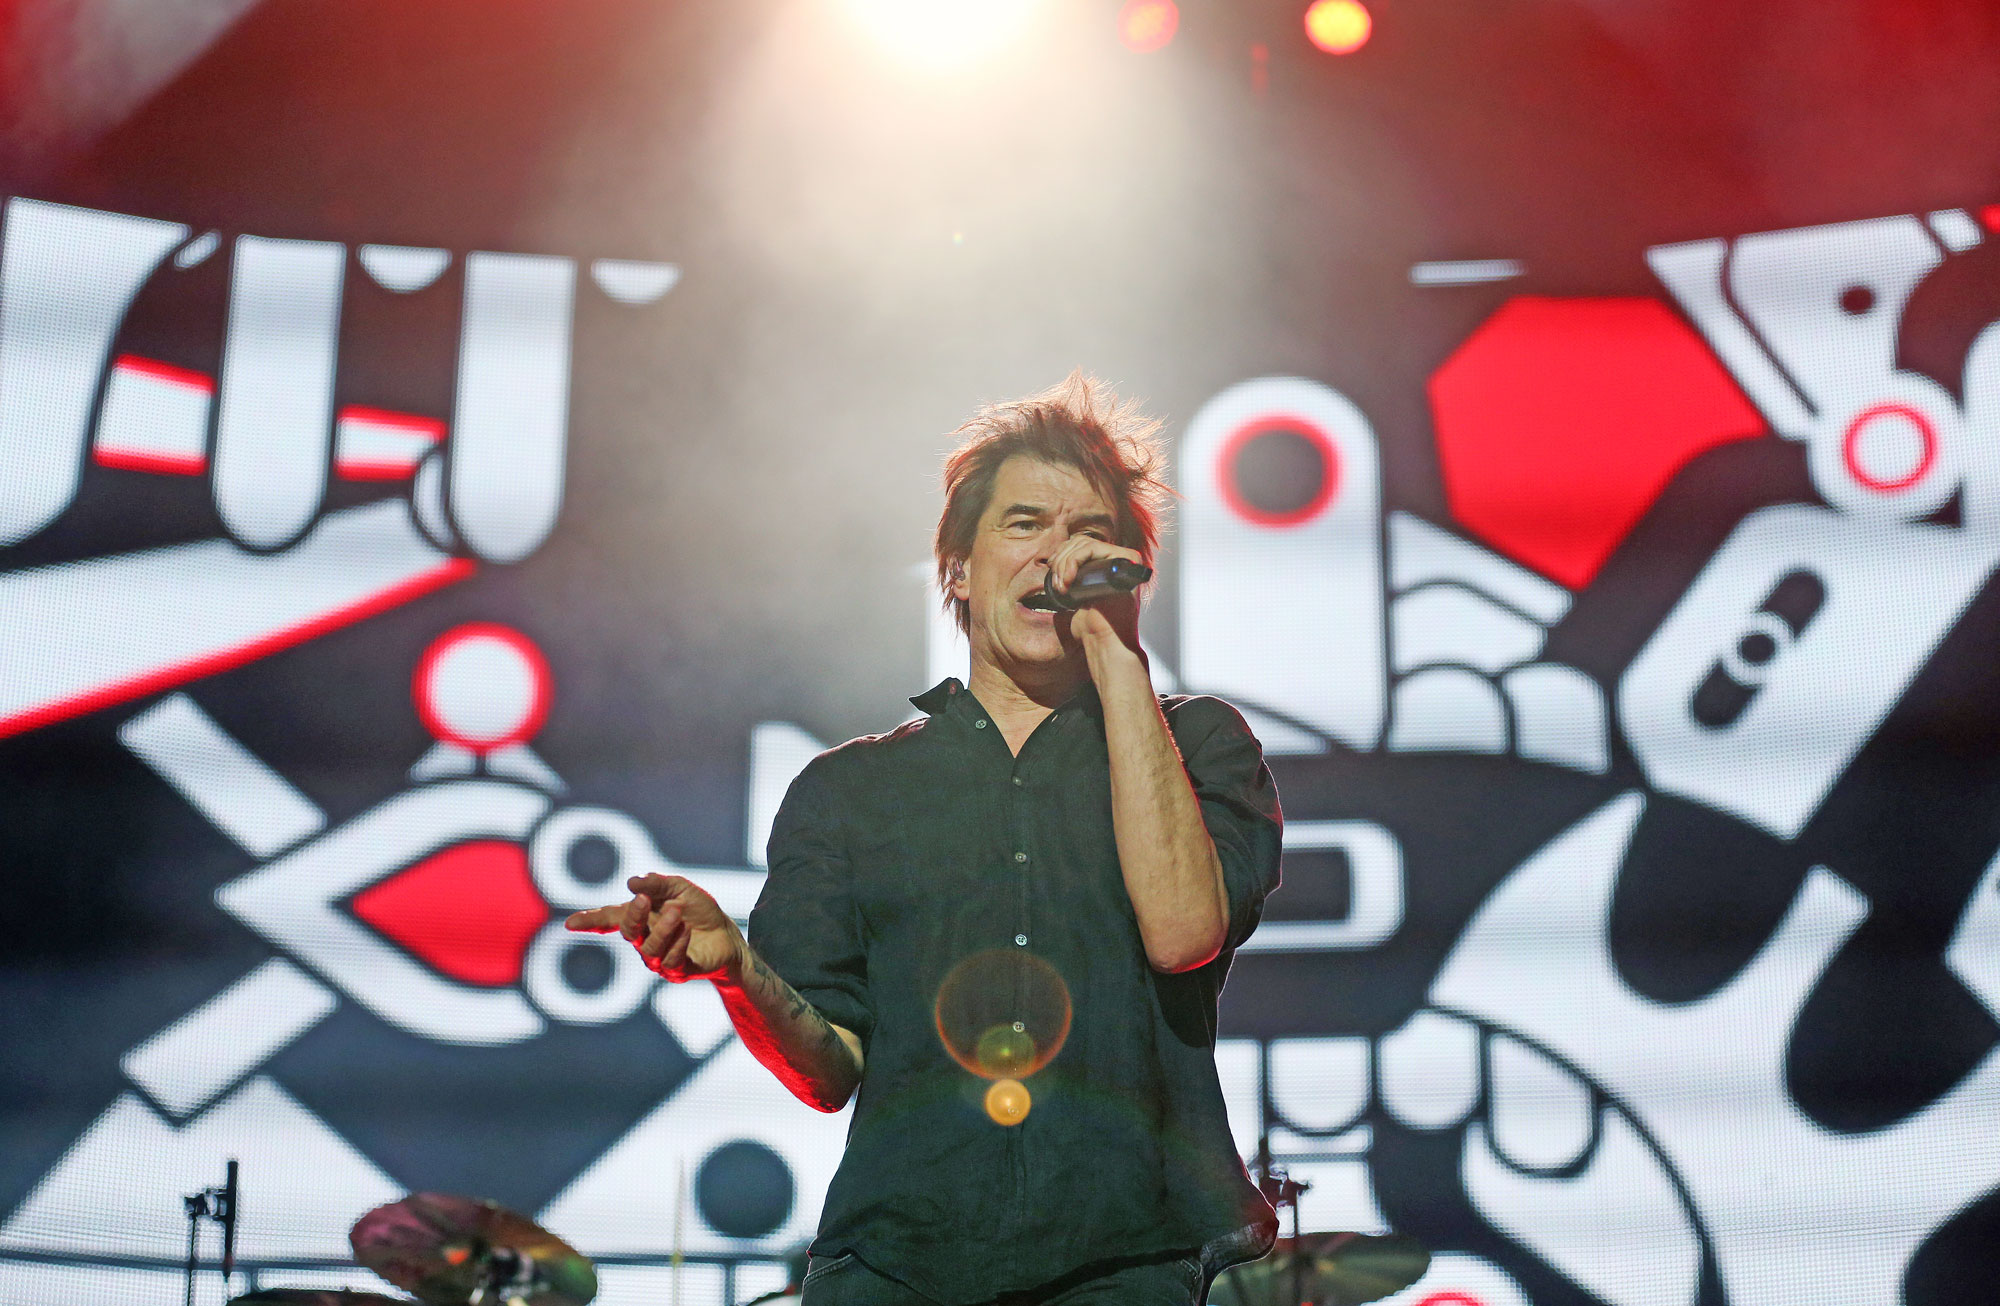 A Short History Of German Music From Bach To Die Toten Hosen